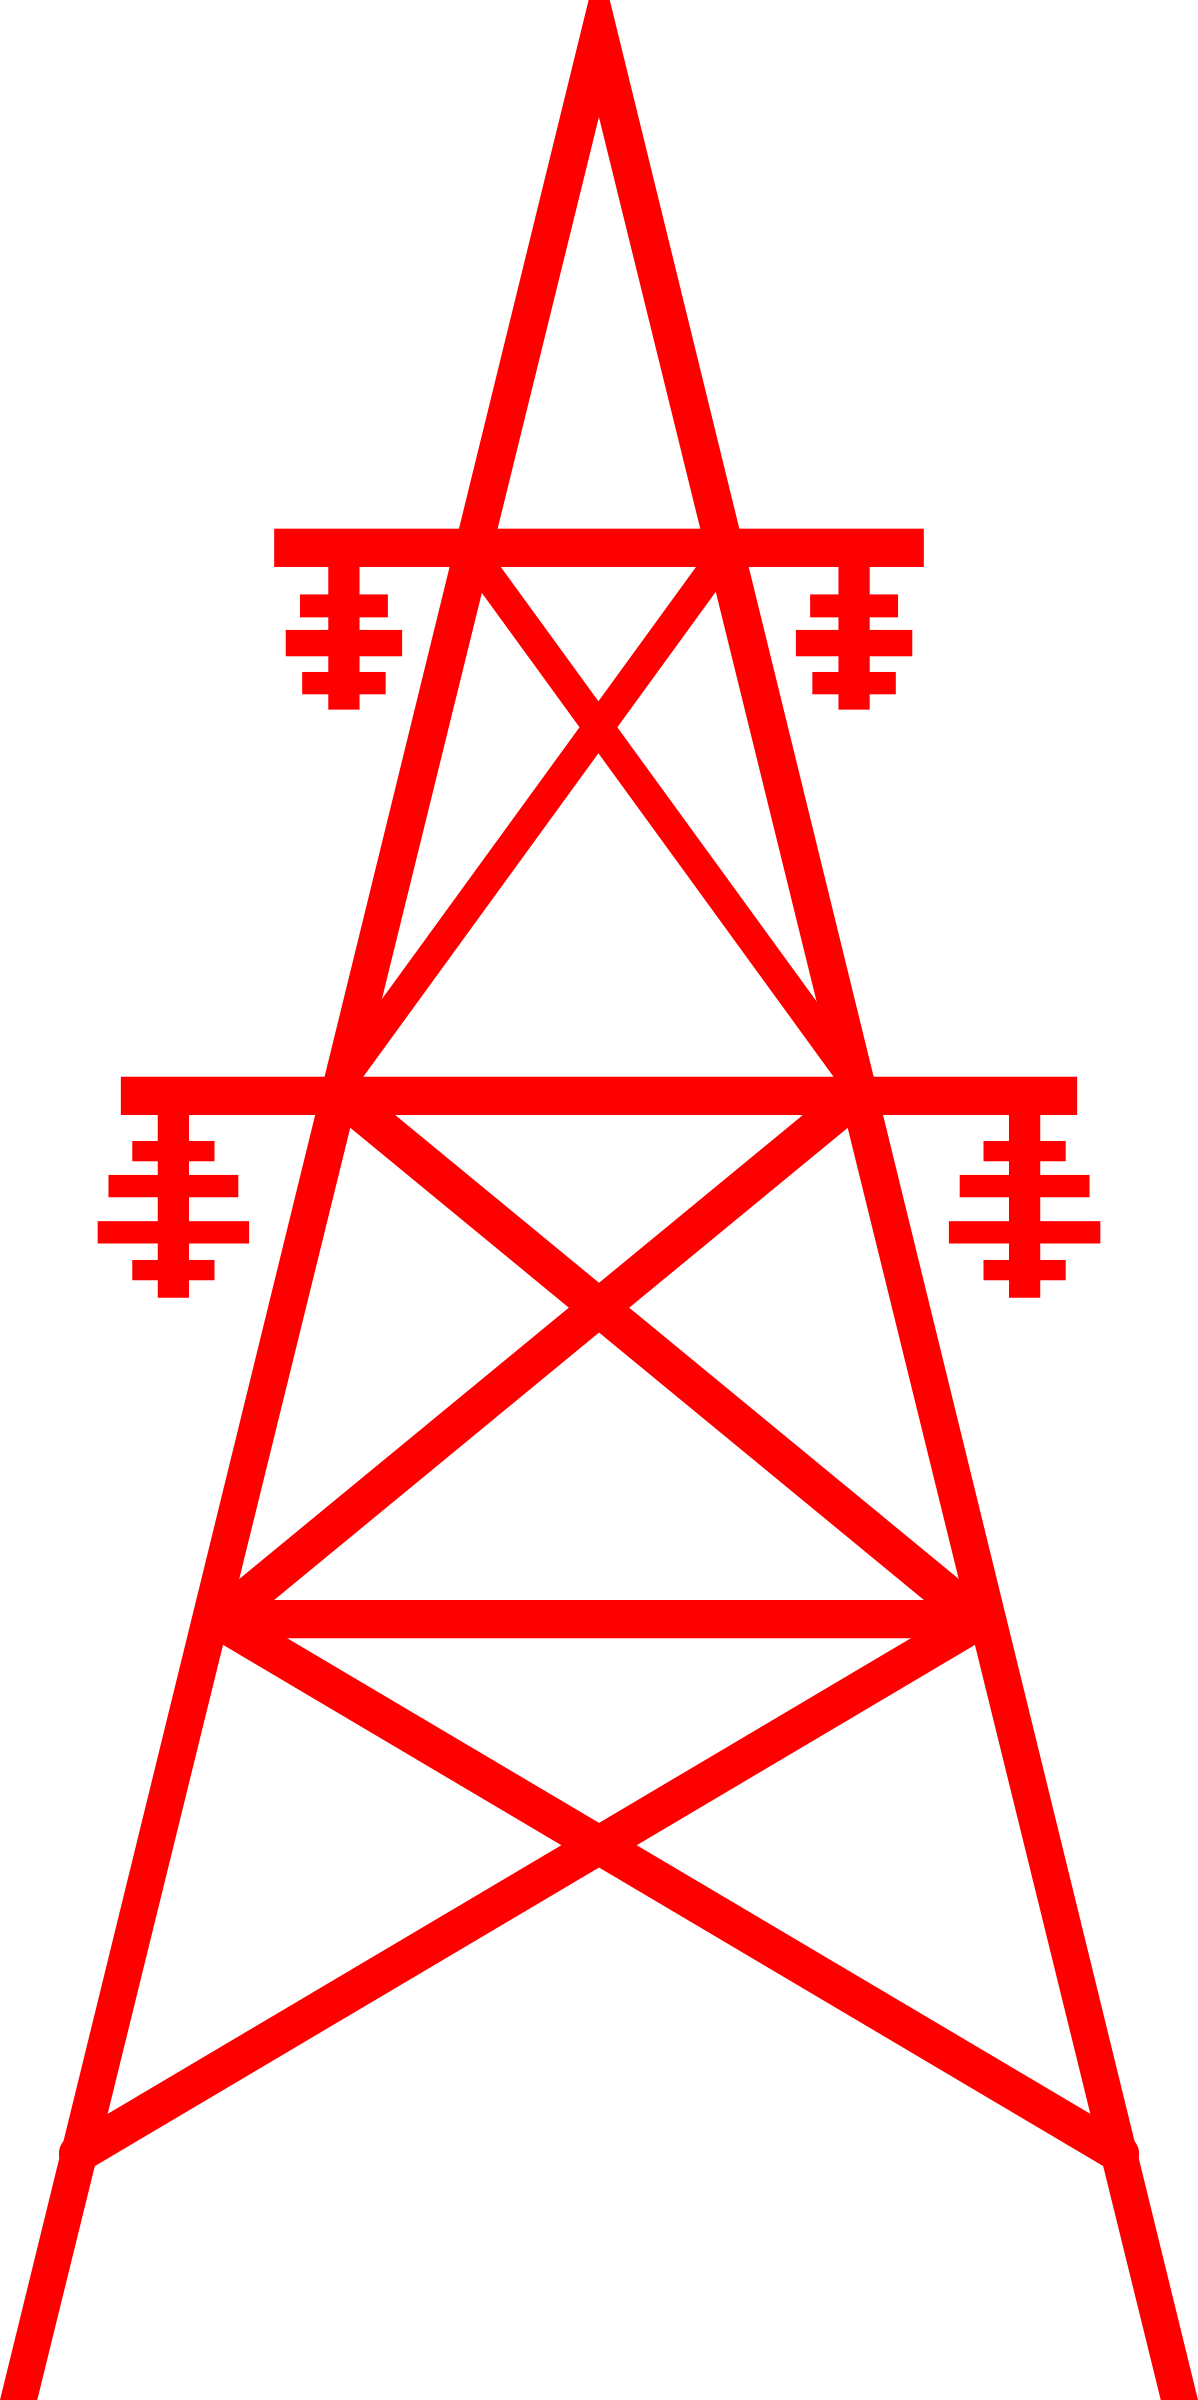 Transmission Tower 1 By Rones